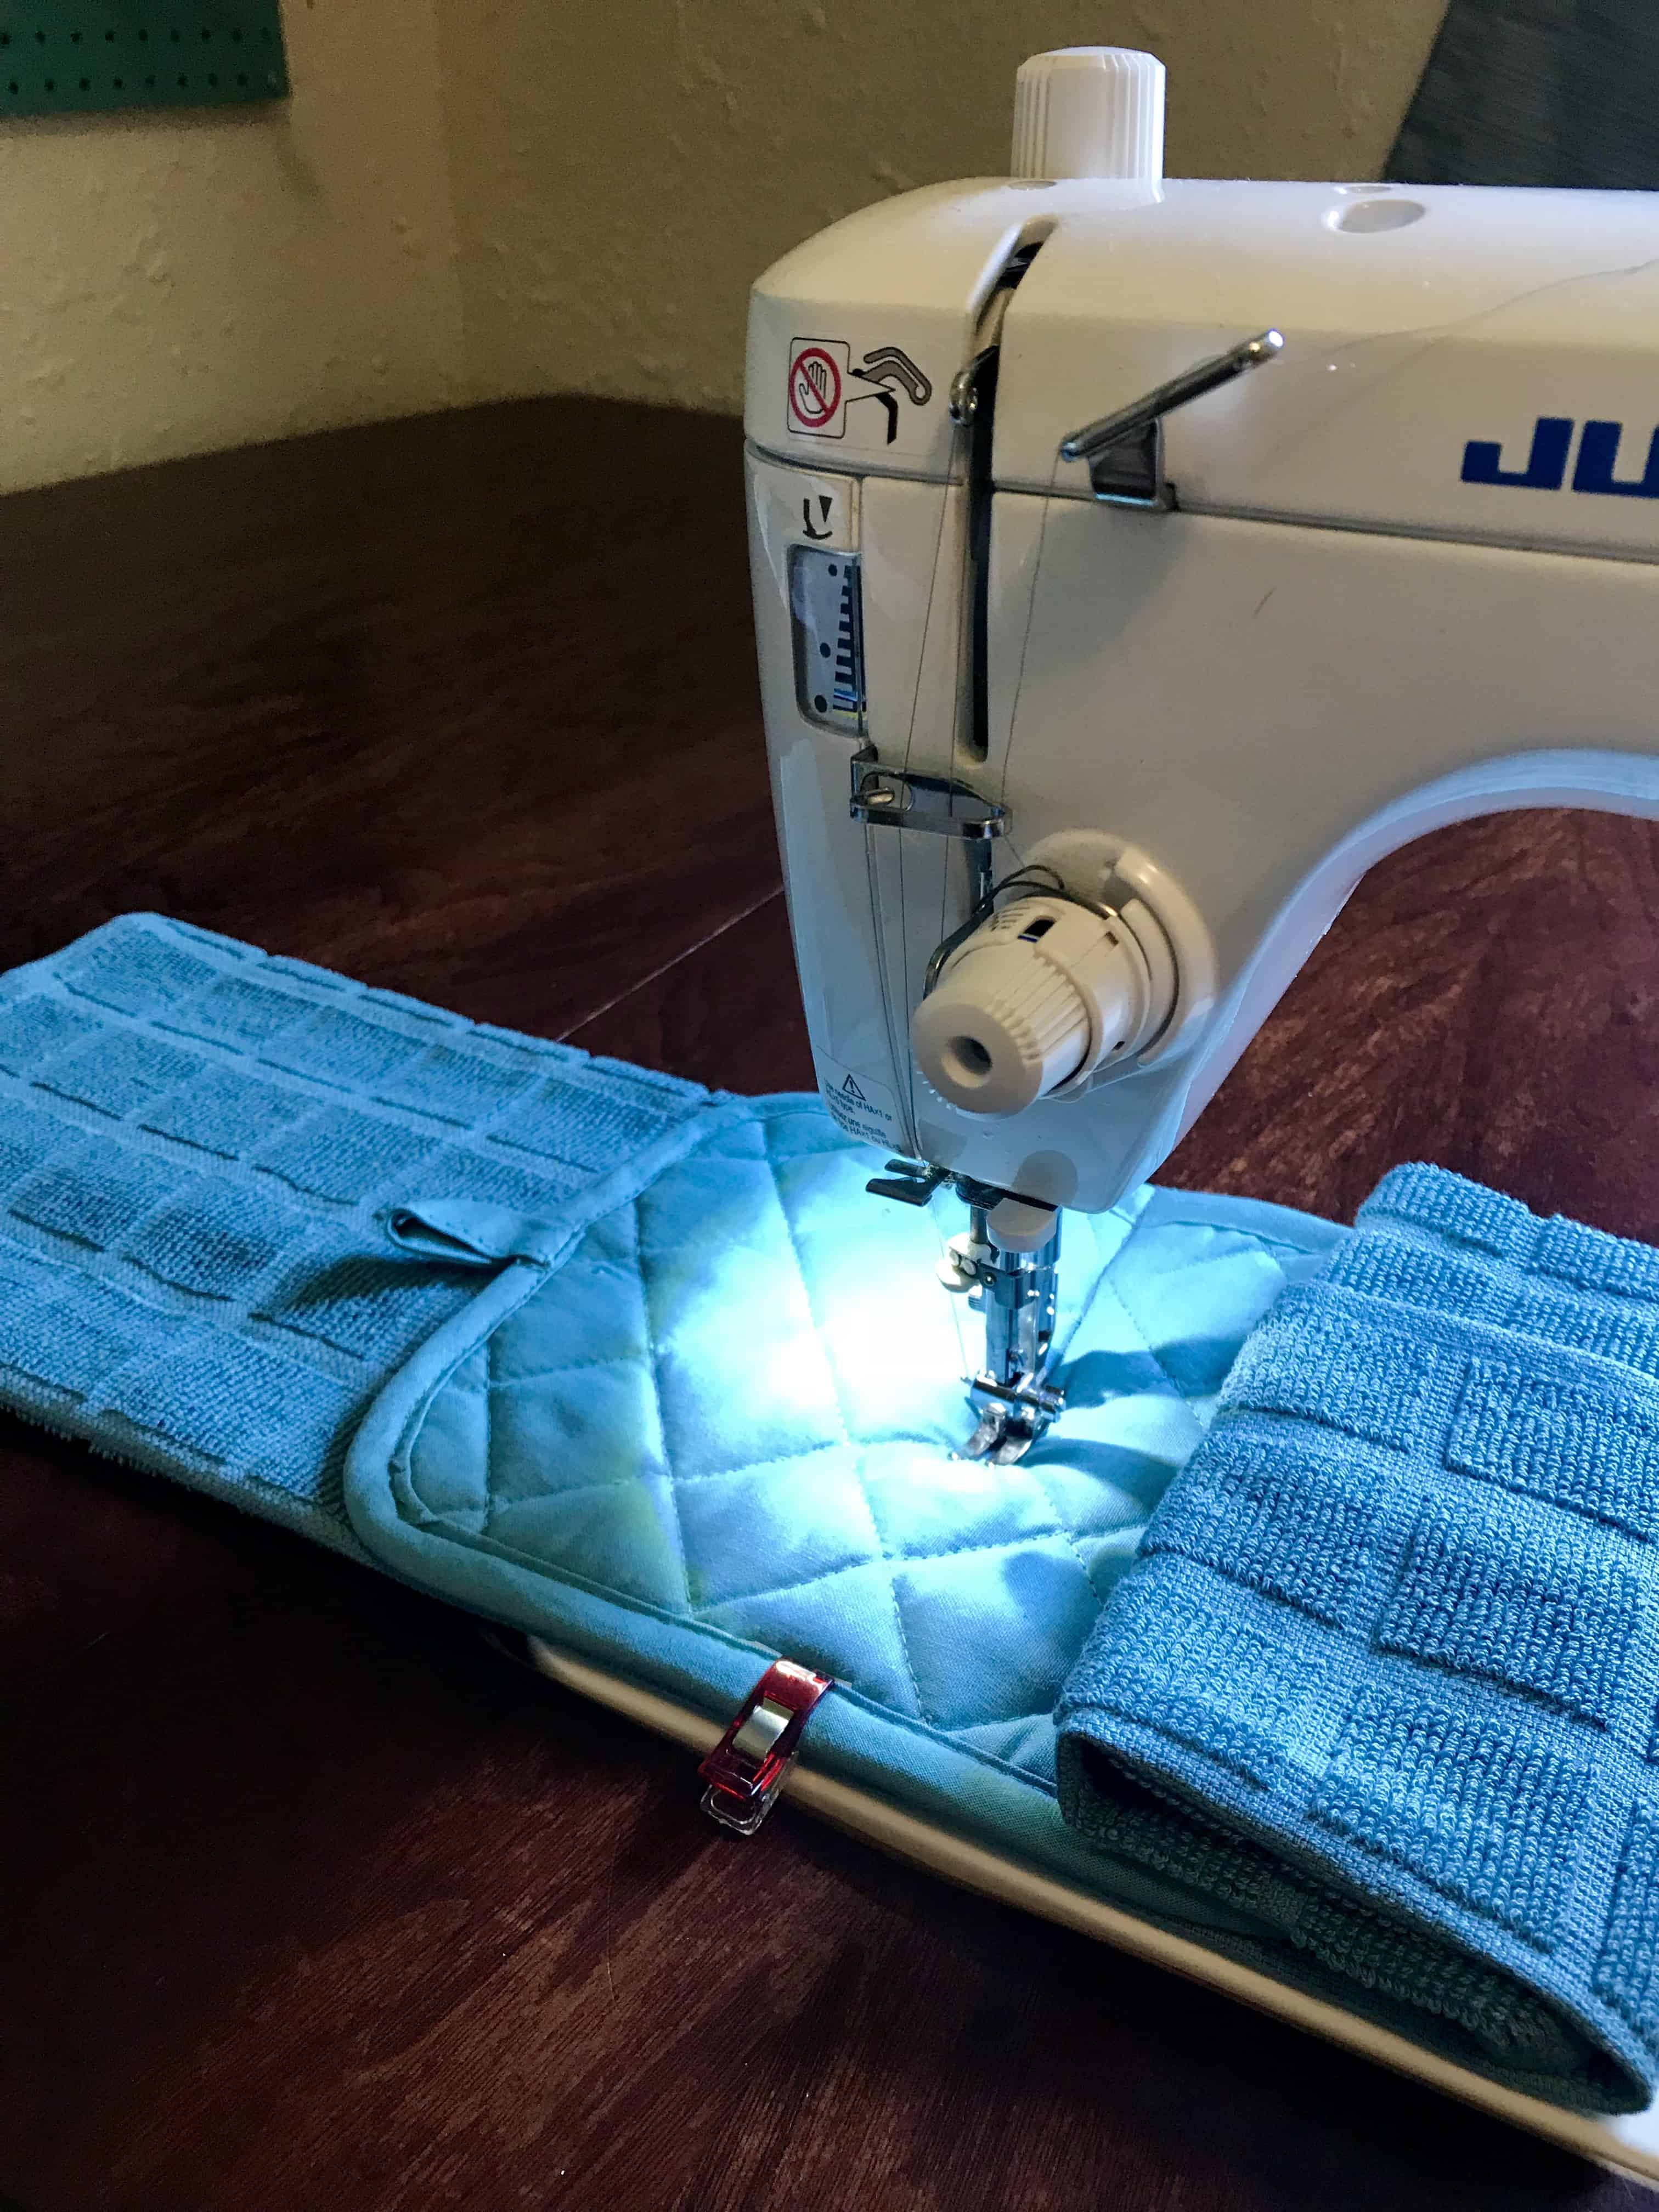 Hanging Kitchen Towel Easy Sewing Project - Happiest Camper